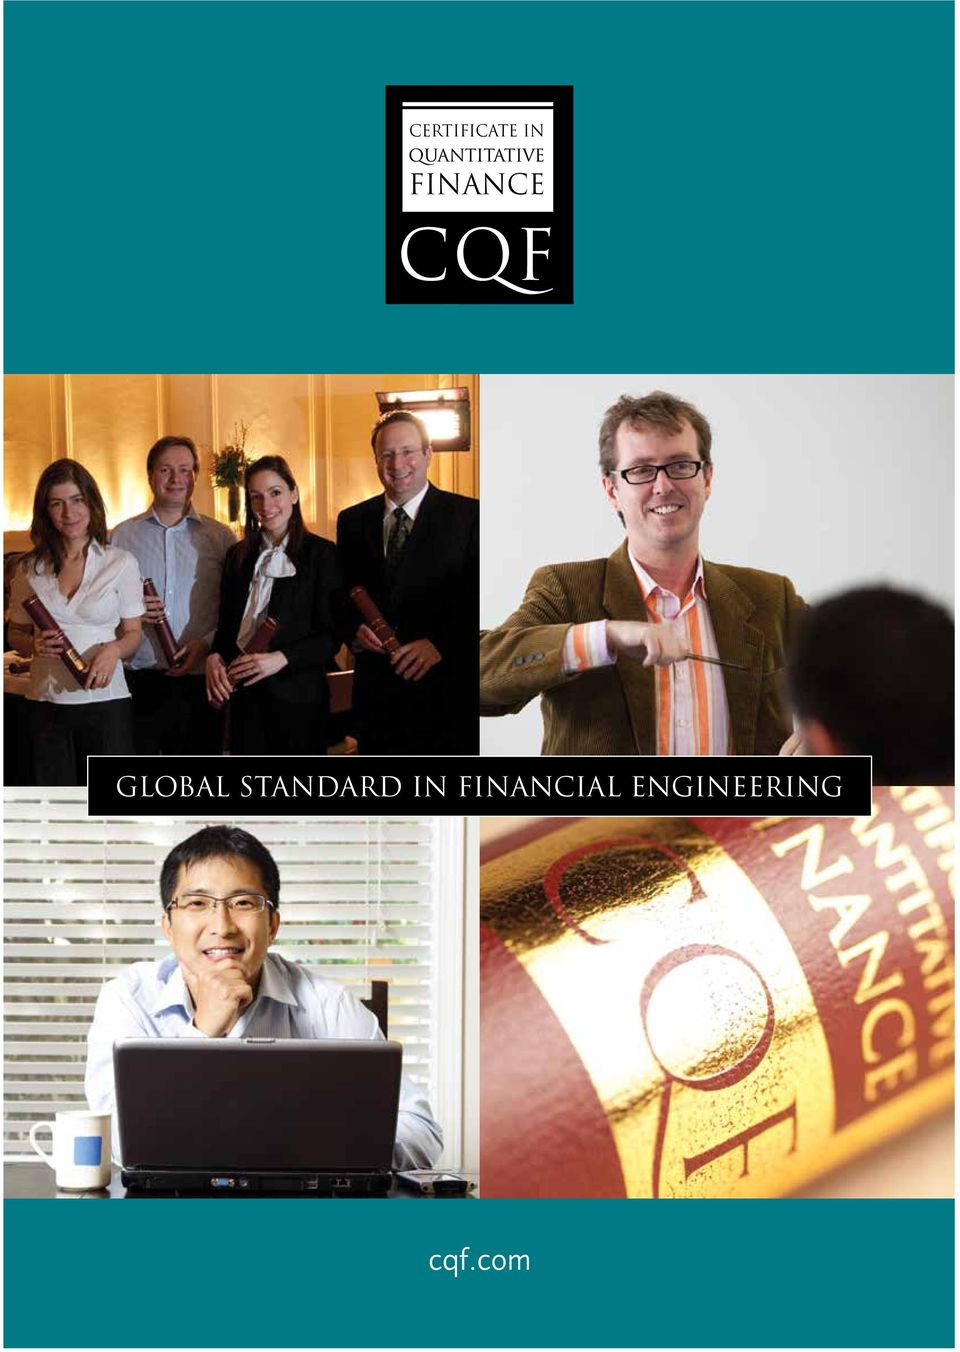 Certificate In Finance Cqf Global Standard In Financial Engineering